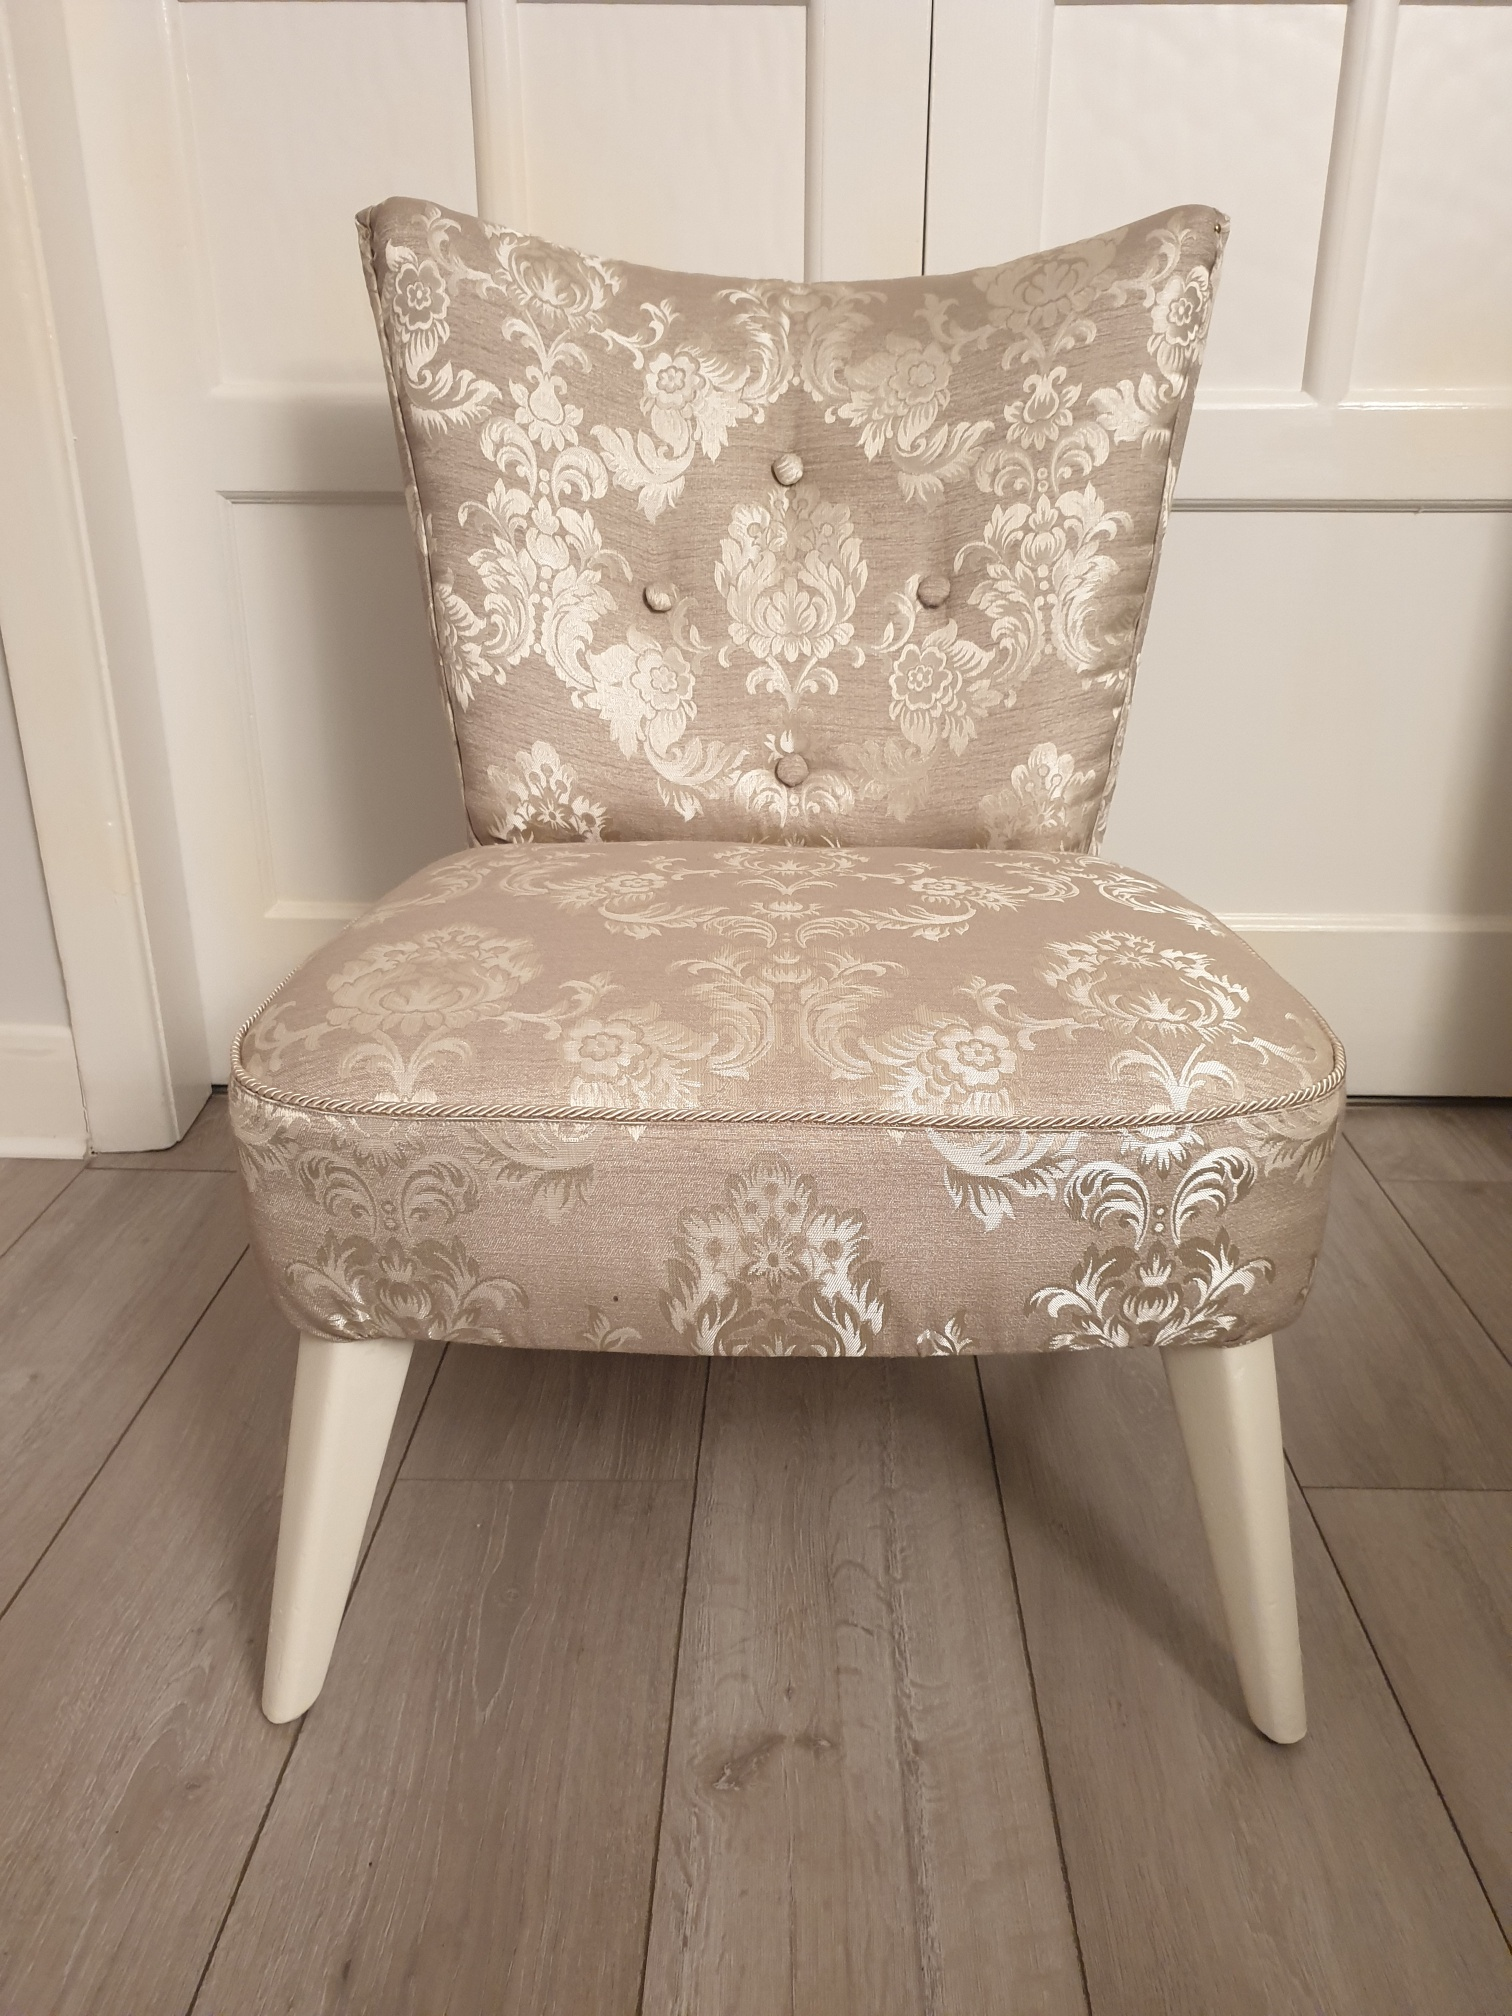 Damask Chair - SOLD